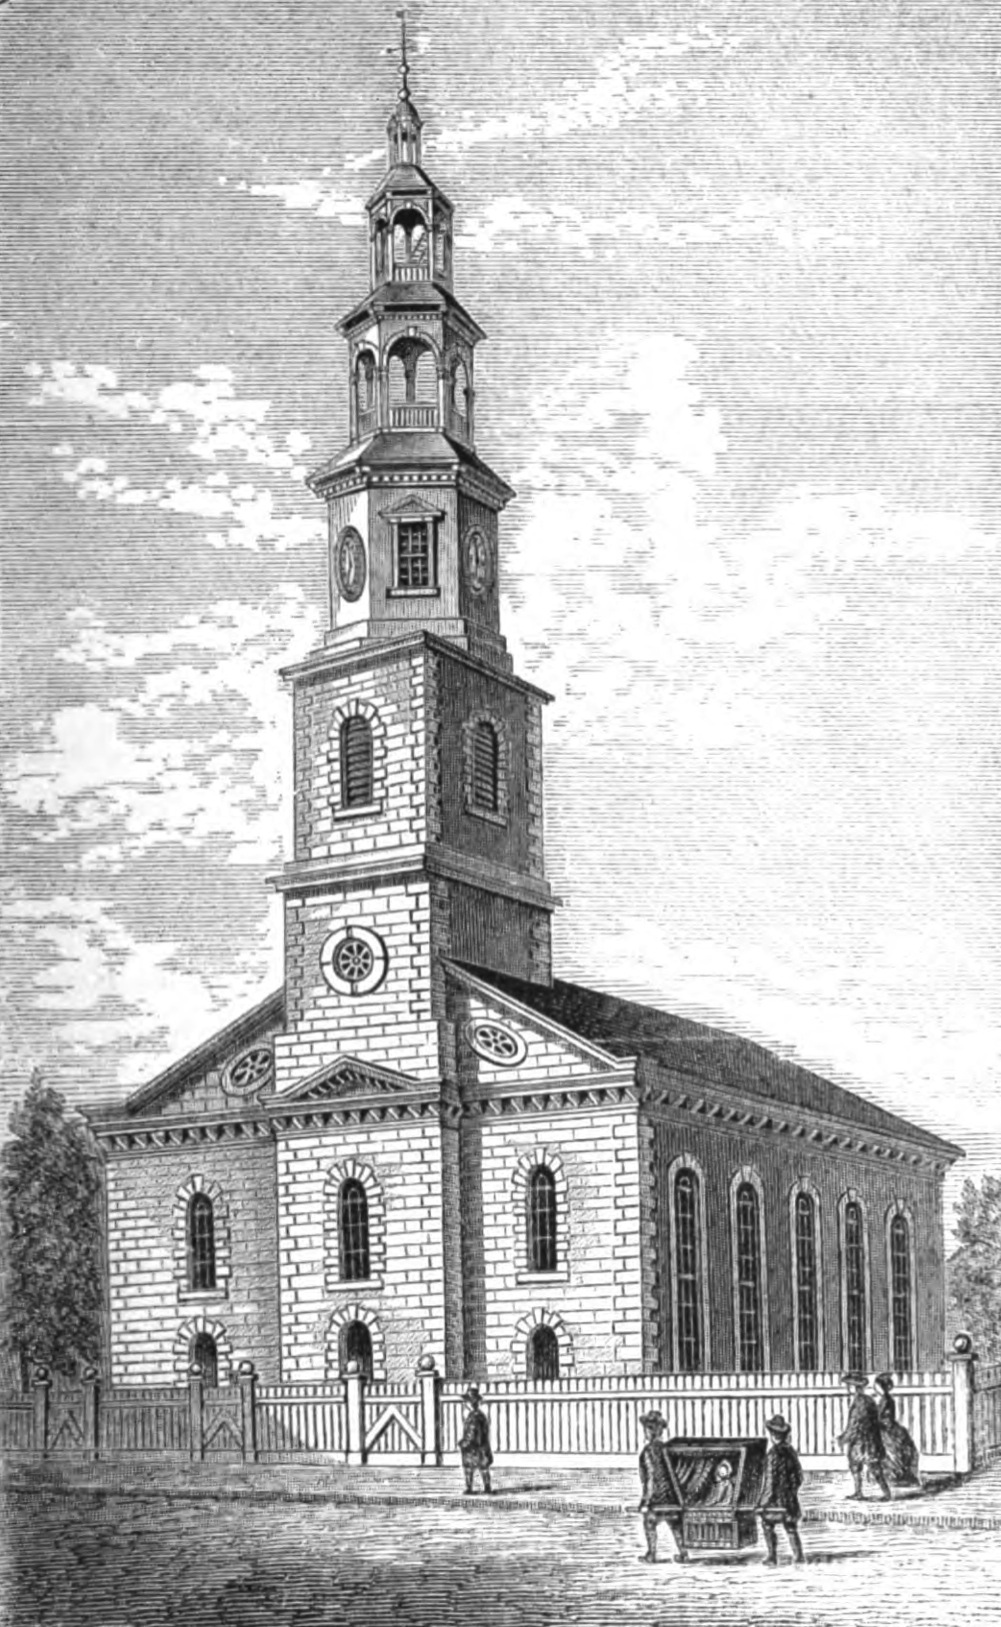 St._George's_Chapel,_Beekman_Street,_New_York_City_-_jpg_version.jpg